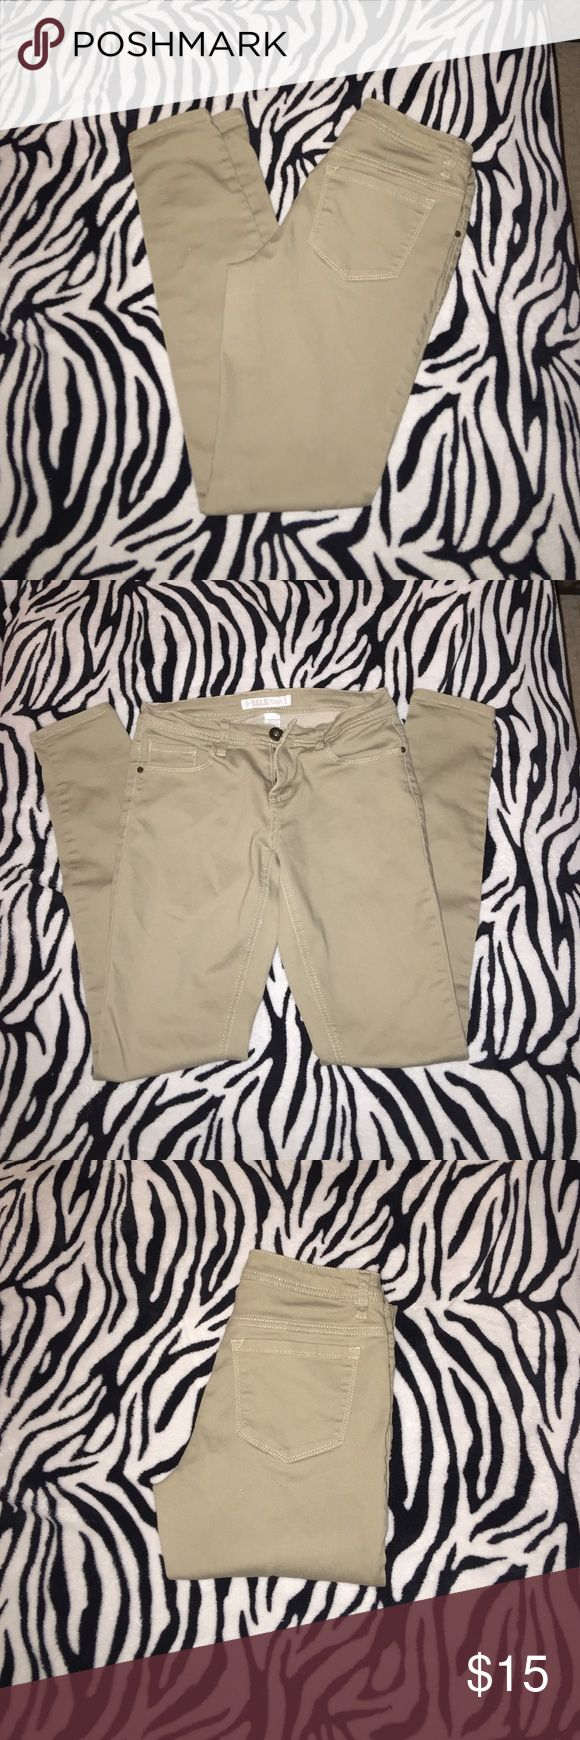 Khaki skinny jeans 🔥🔥today if you spend over 40 dollars you can pick one item 15 and under and get it half off!!🔥🔥 Khaki skinny jeans too small for me I wore them twice but they never really fit me right. Jeans Straight Leg